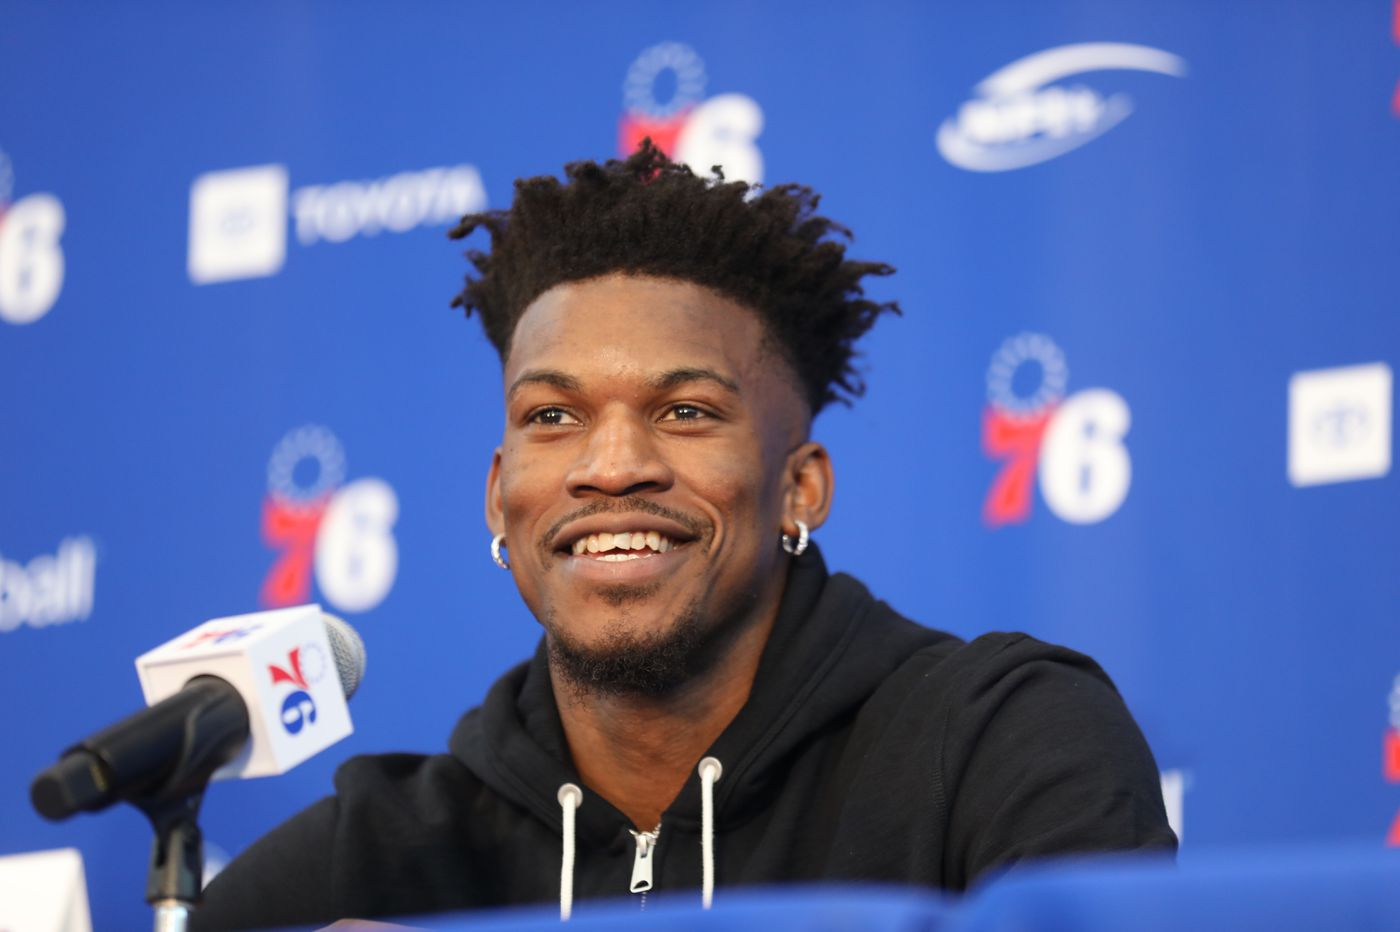 Wolves newcomers get warm welcome after Butler trade